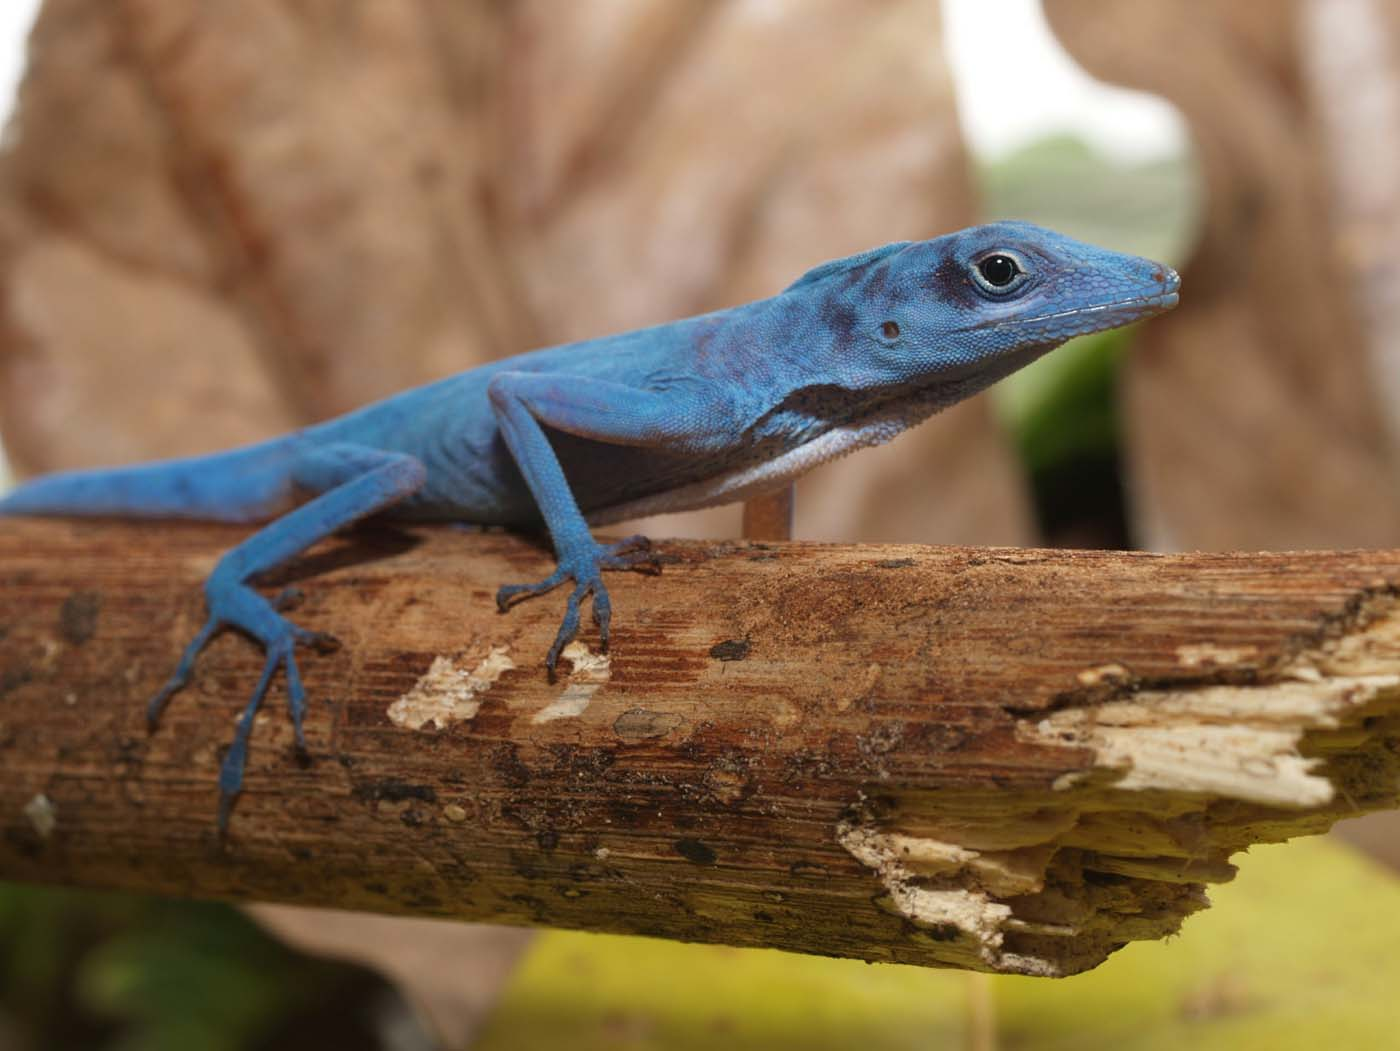 A blue anole (Anolis gorgonae), a highly threatened lizard, is found only on the island of Gorgona, about 50 km off the Colombian Pacific coast. (STR/AFP/Getty Images)